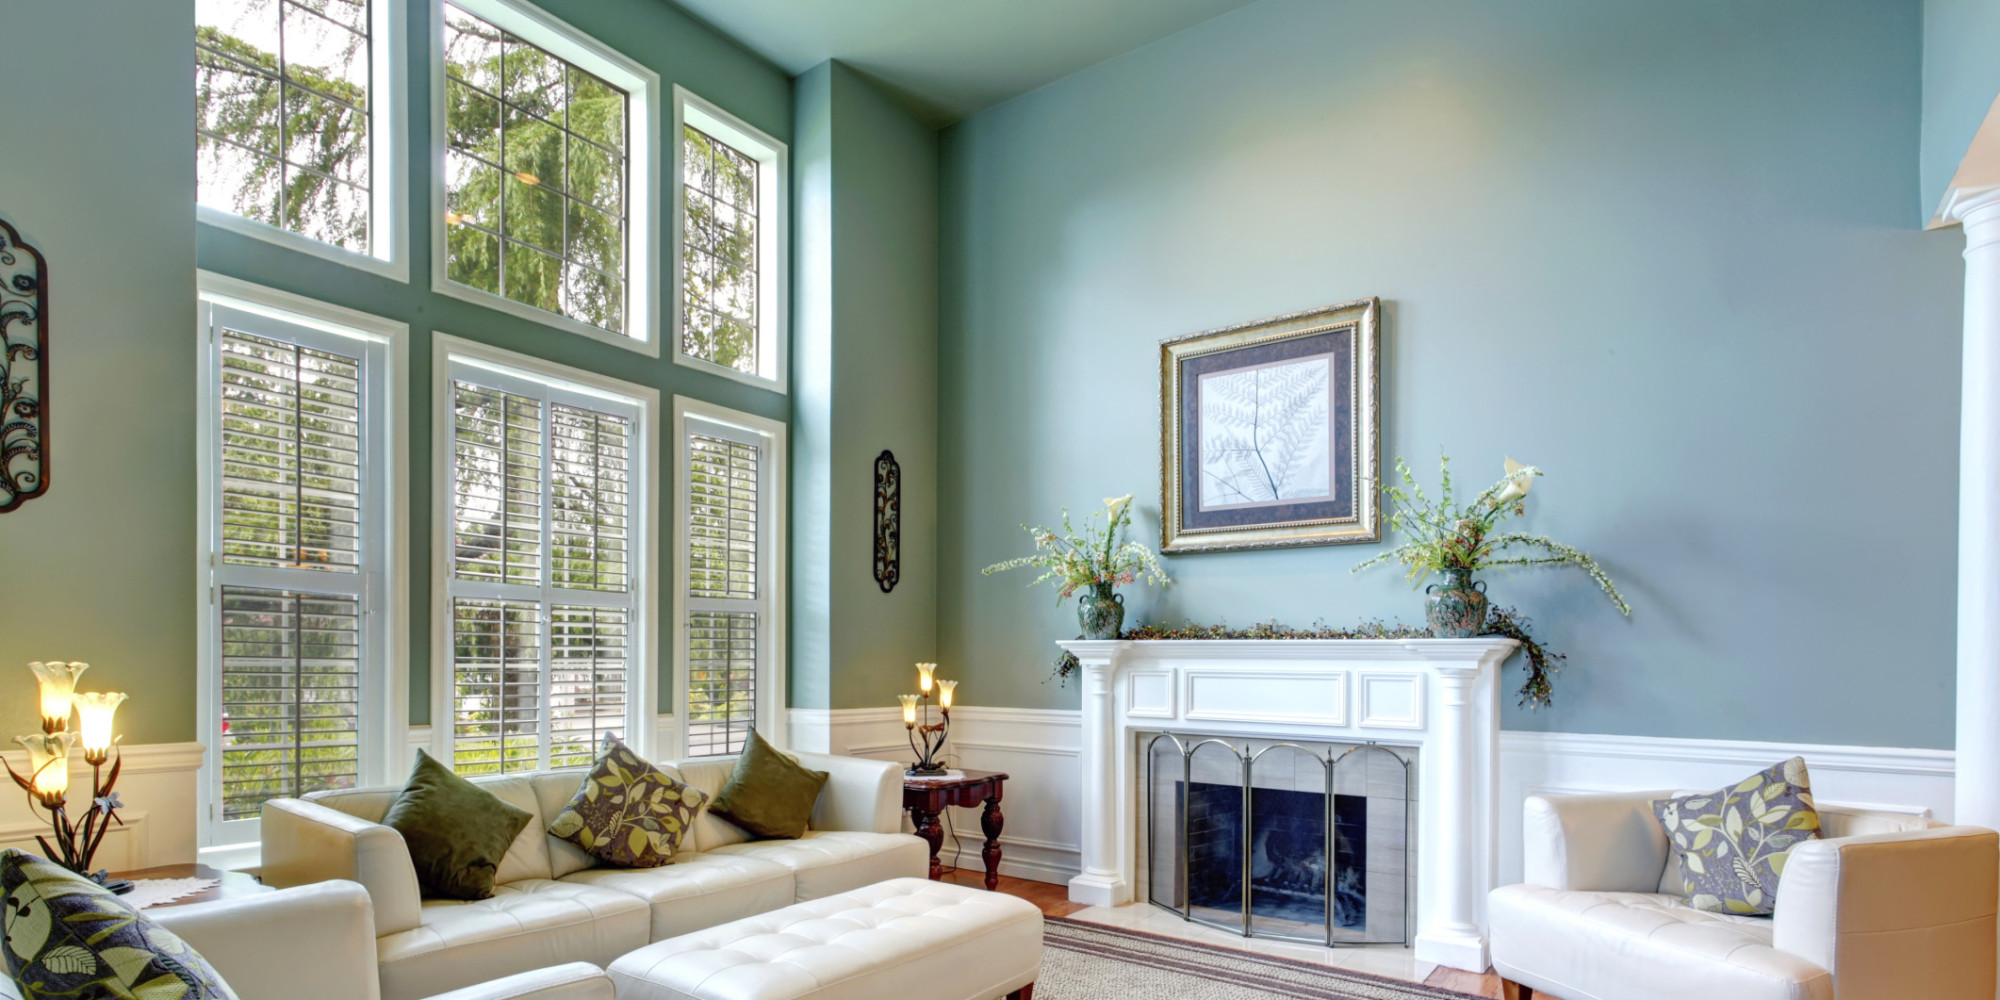 decorate small living room white with turquoise accents the most overlooked aspect of decorating a ...